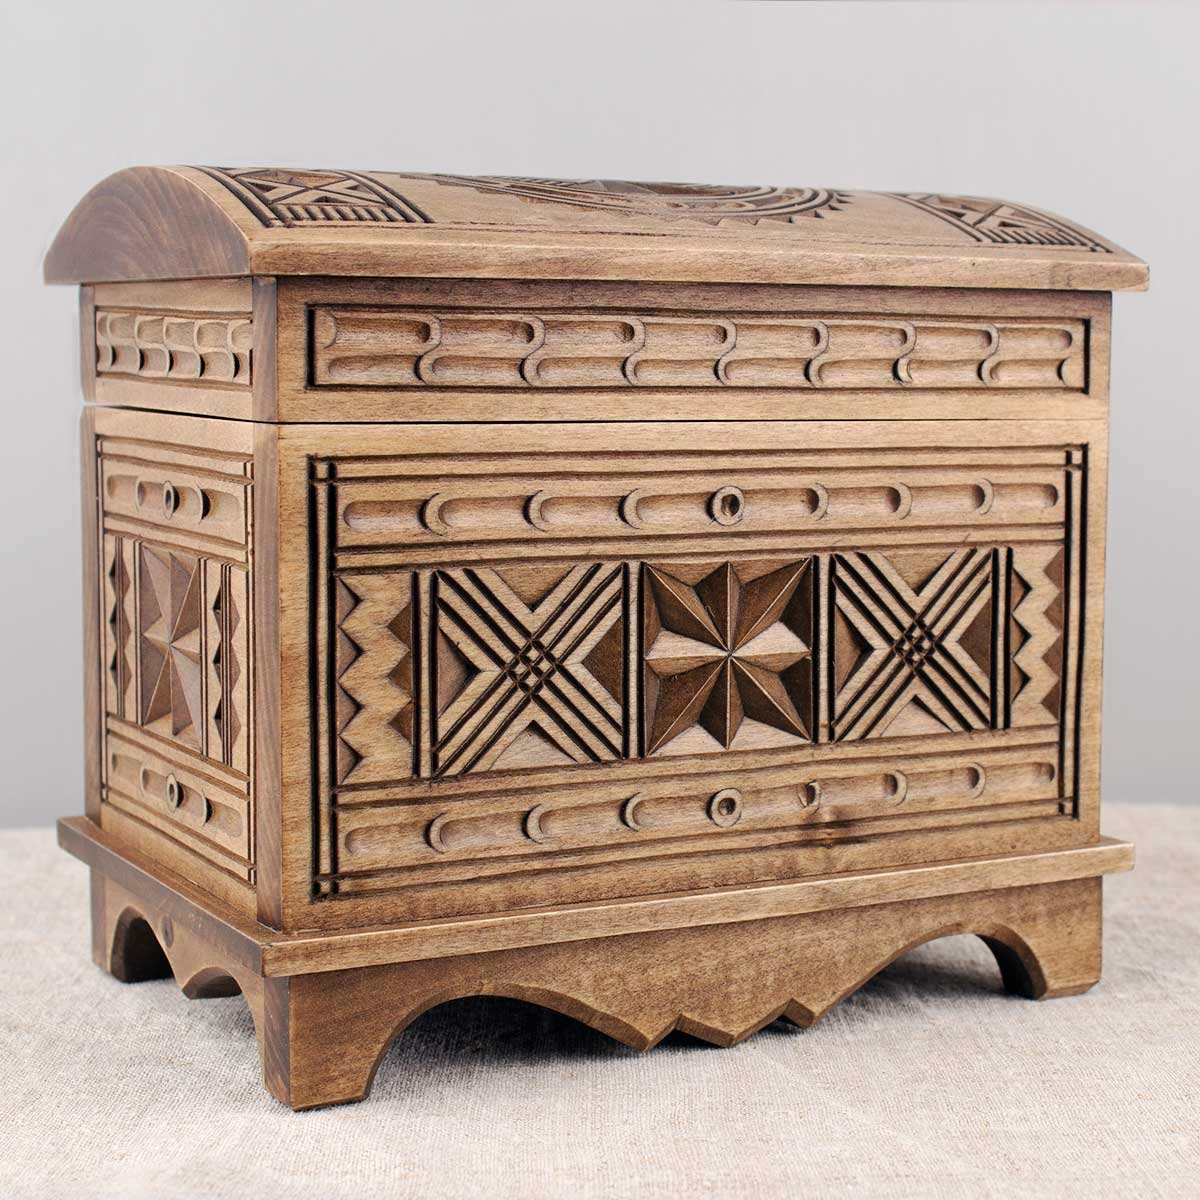 Carved Wooden Chest Box, Linden